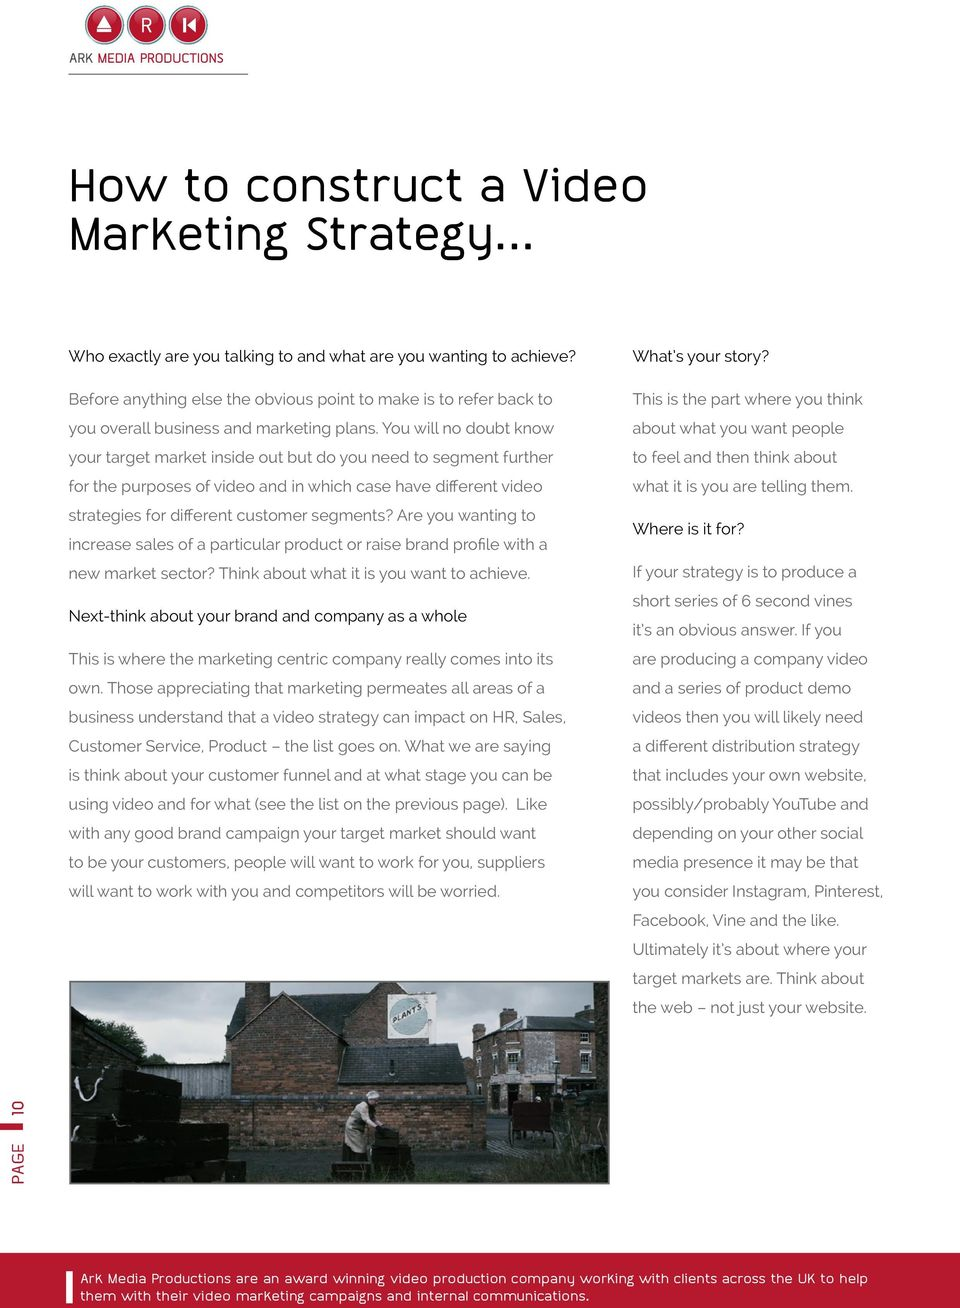 You will no doubt know your target market inside out but do you need to segment further for the purposes of video and in which case have different video strategies for different customer segments?